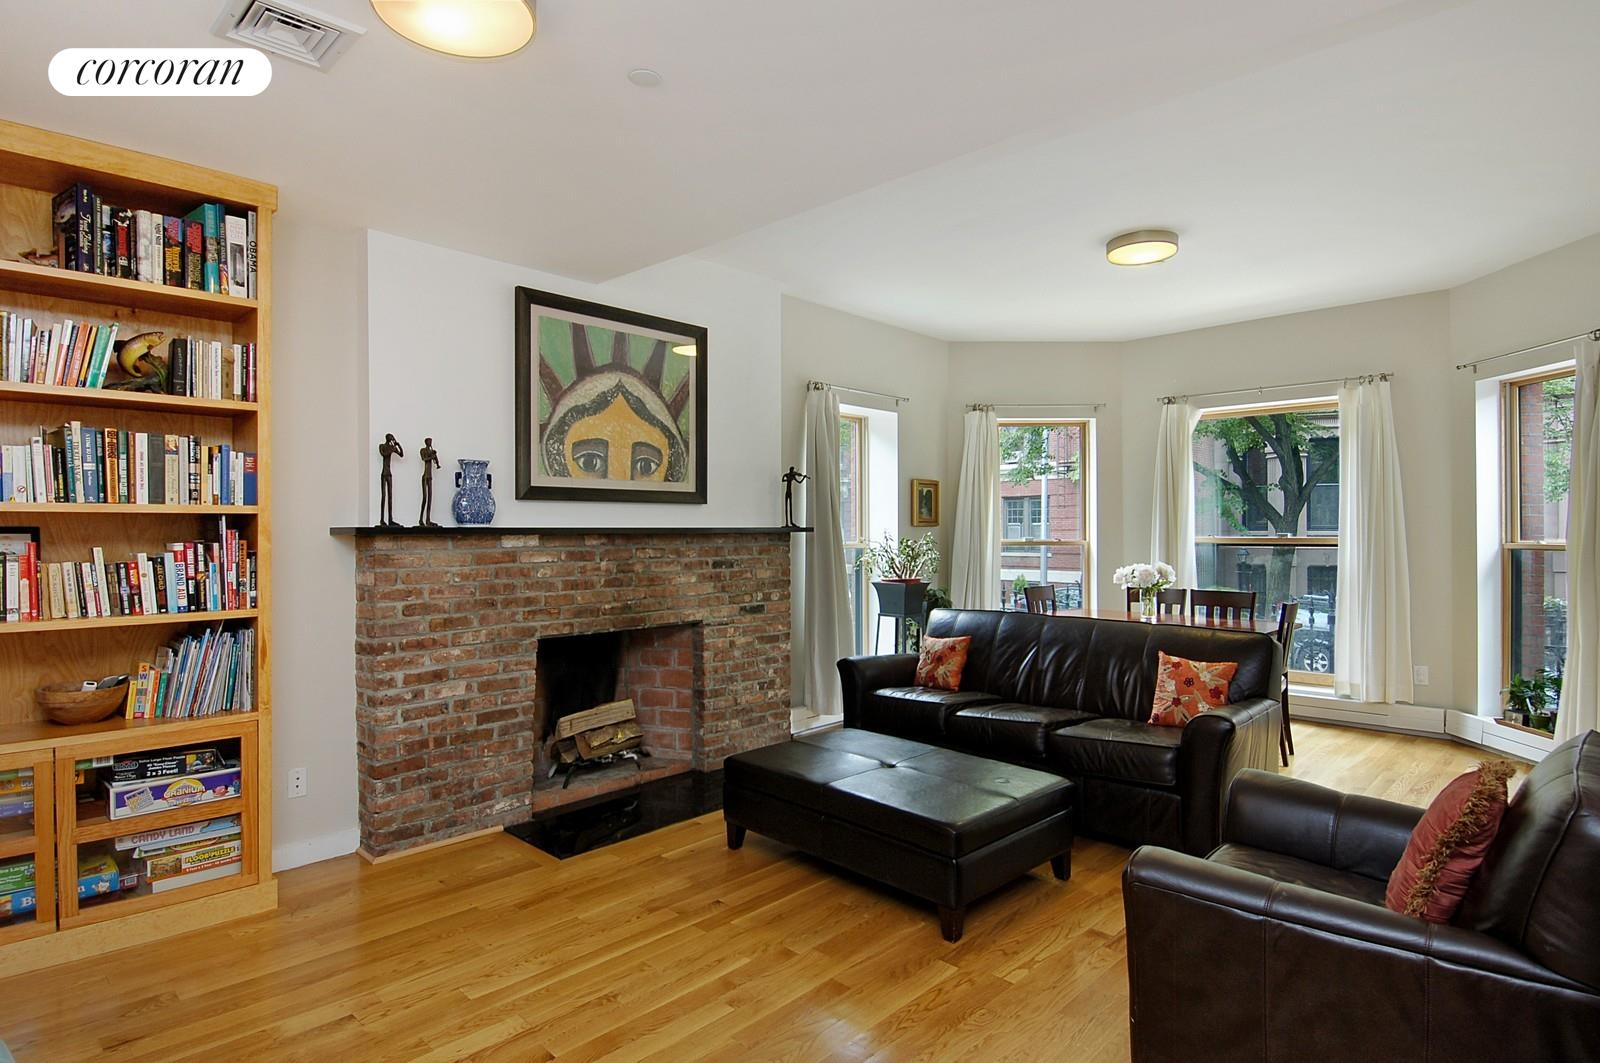 153 Lincoln Place, Apt. 1A, Park Slope